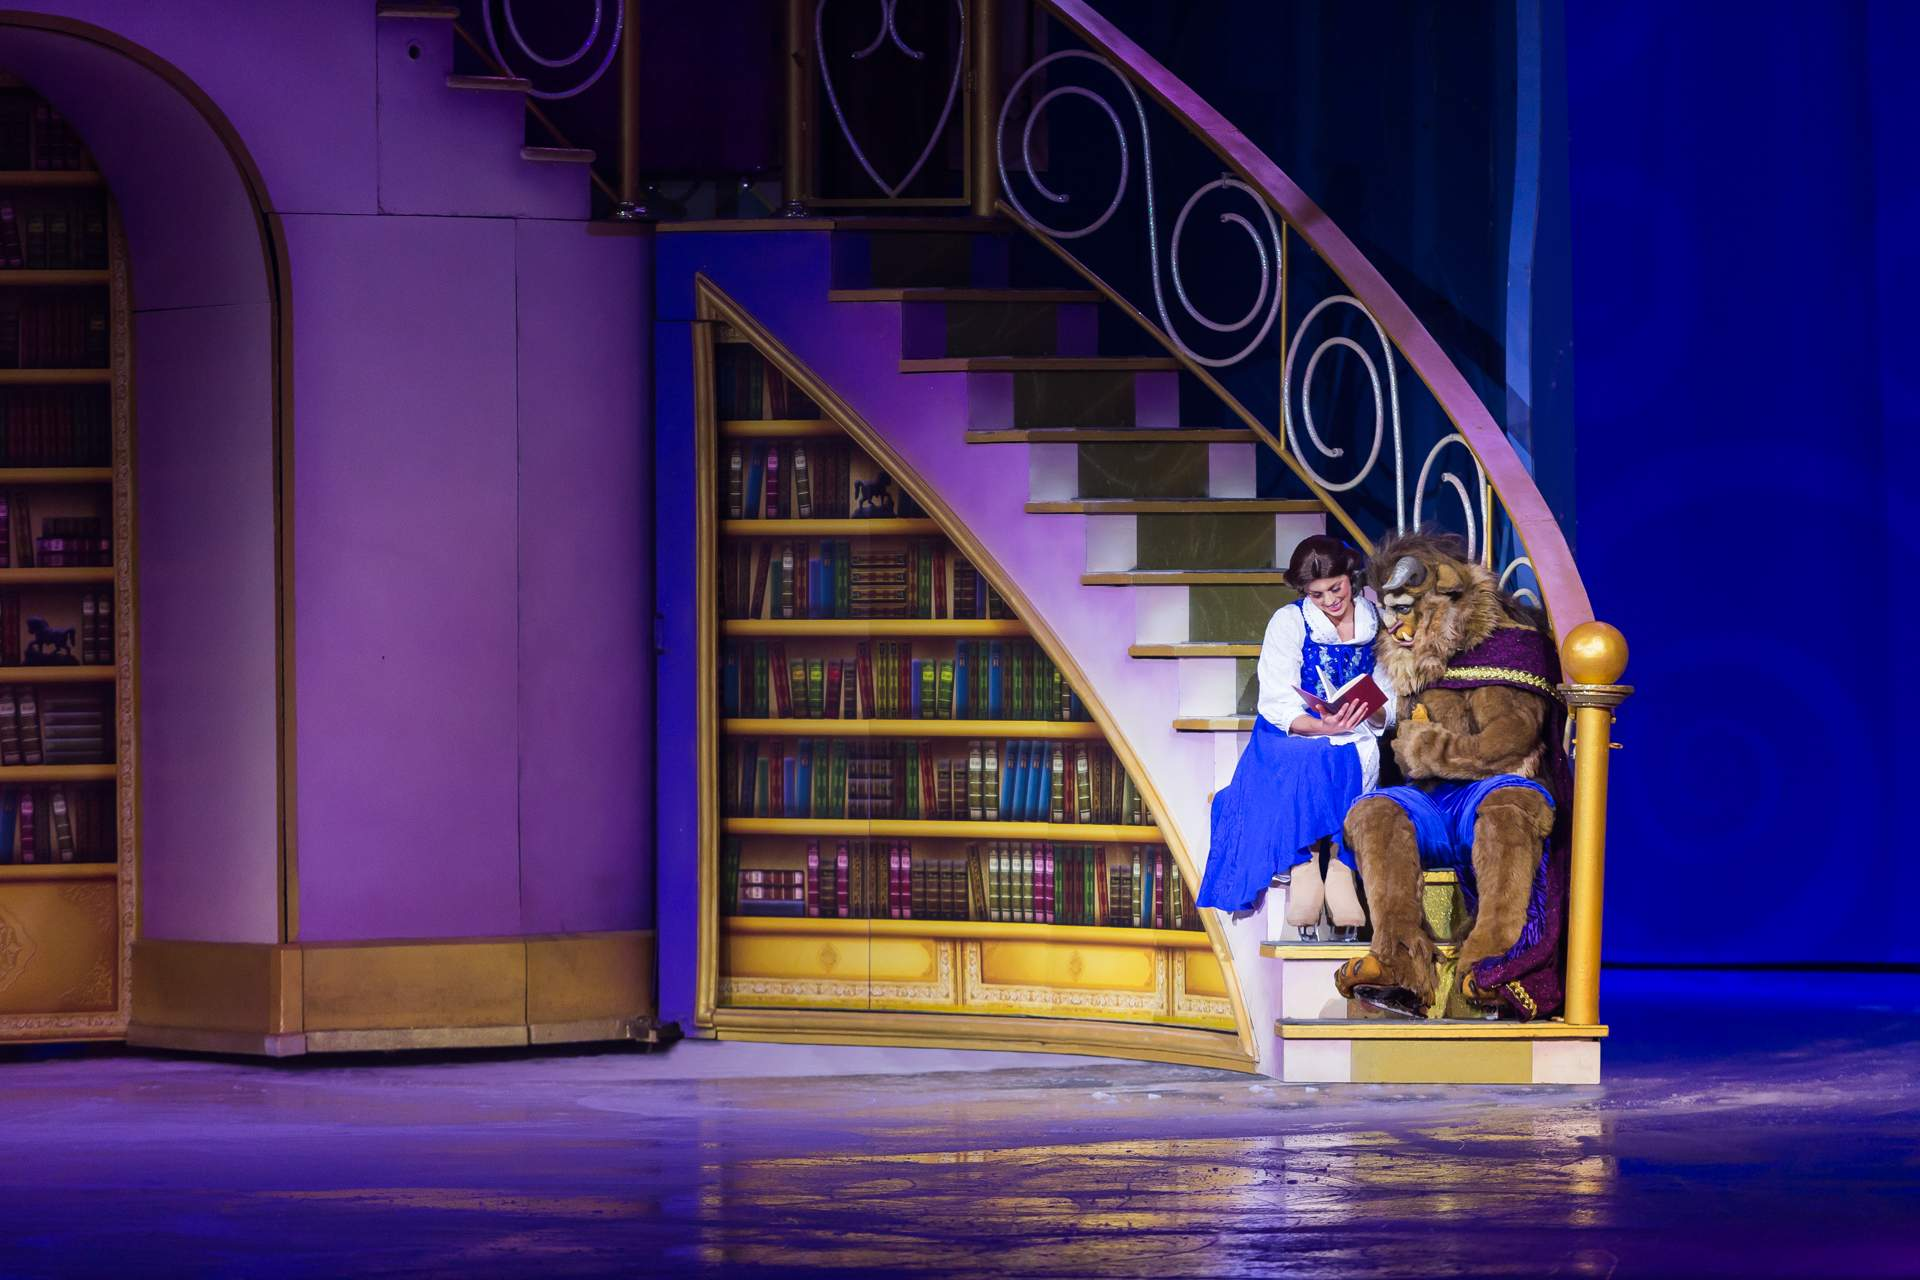 Beauty and Beast sitting on a spiral staircase